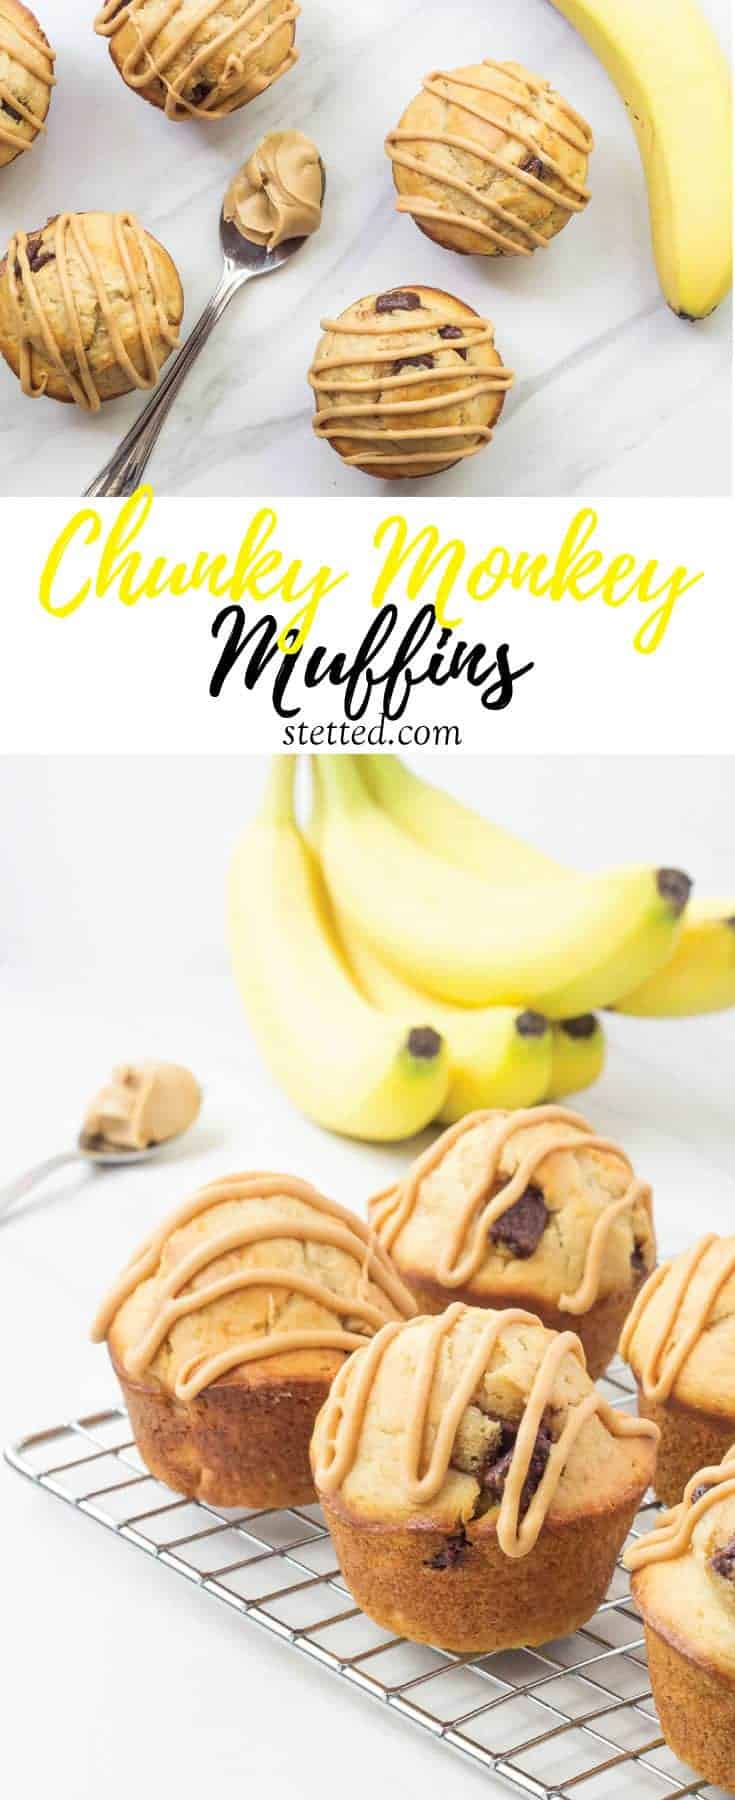 Chunky monkey muffins are the best way to use up those bananas on your counter. Filled with peanut butter, bananas, and chocolate, the whole family will love them!